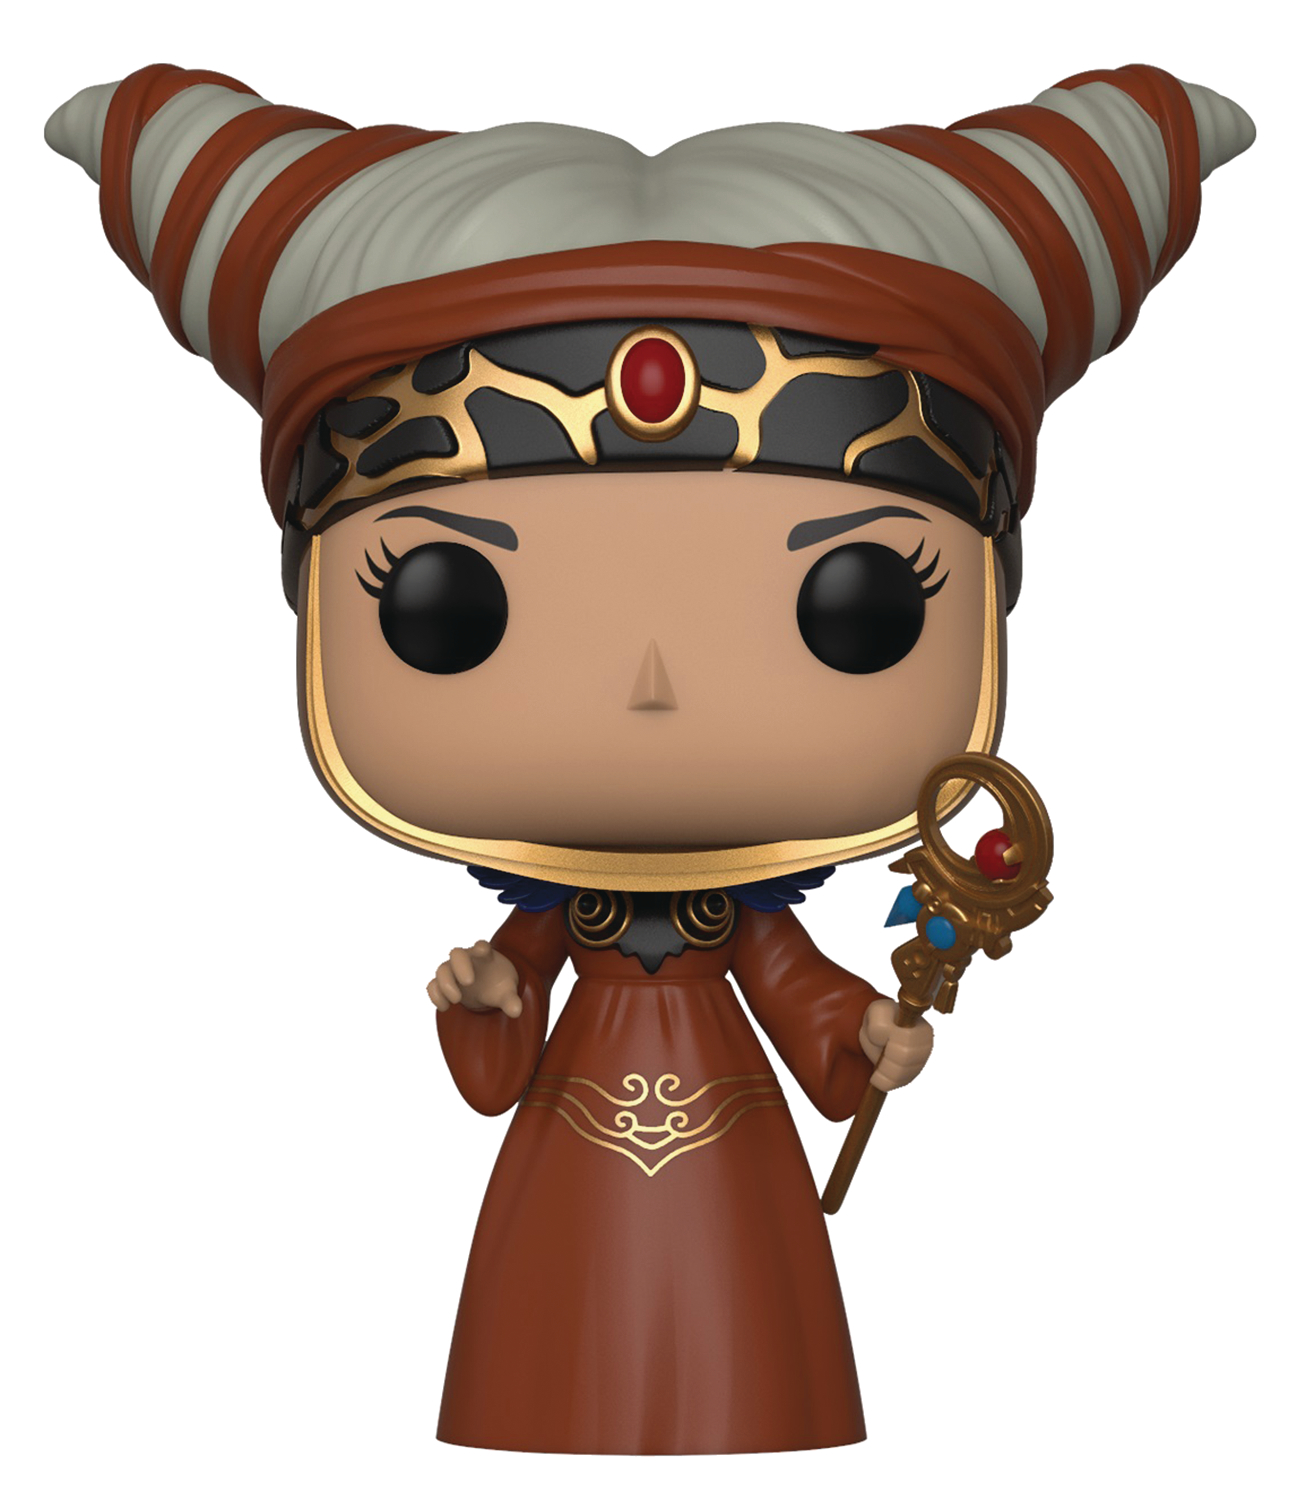 POP TV POWER RANGERS S7 RITA REPULSA VINYL FIG